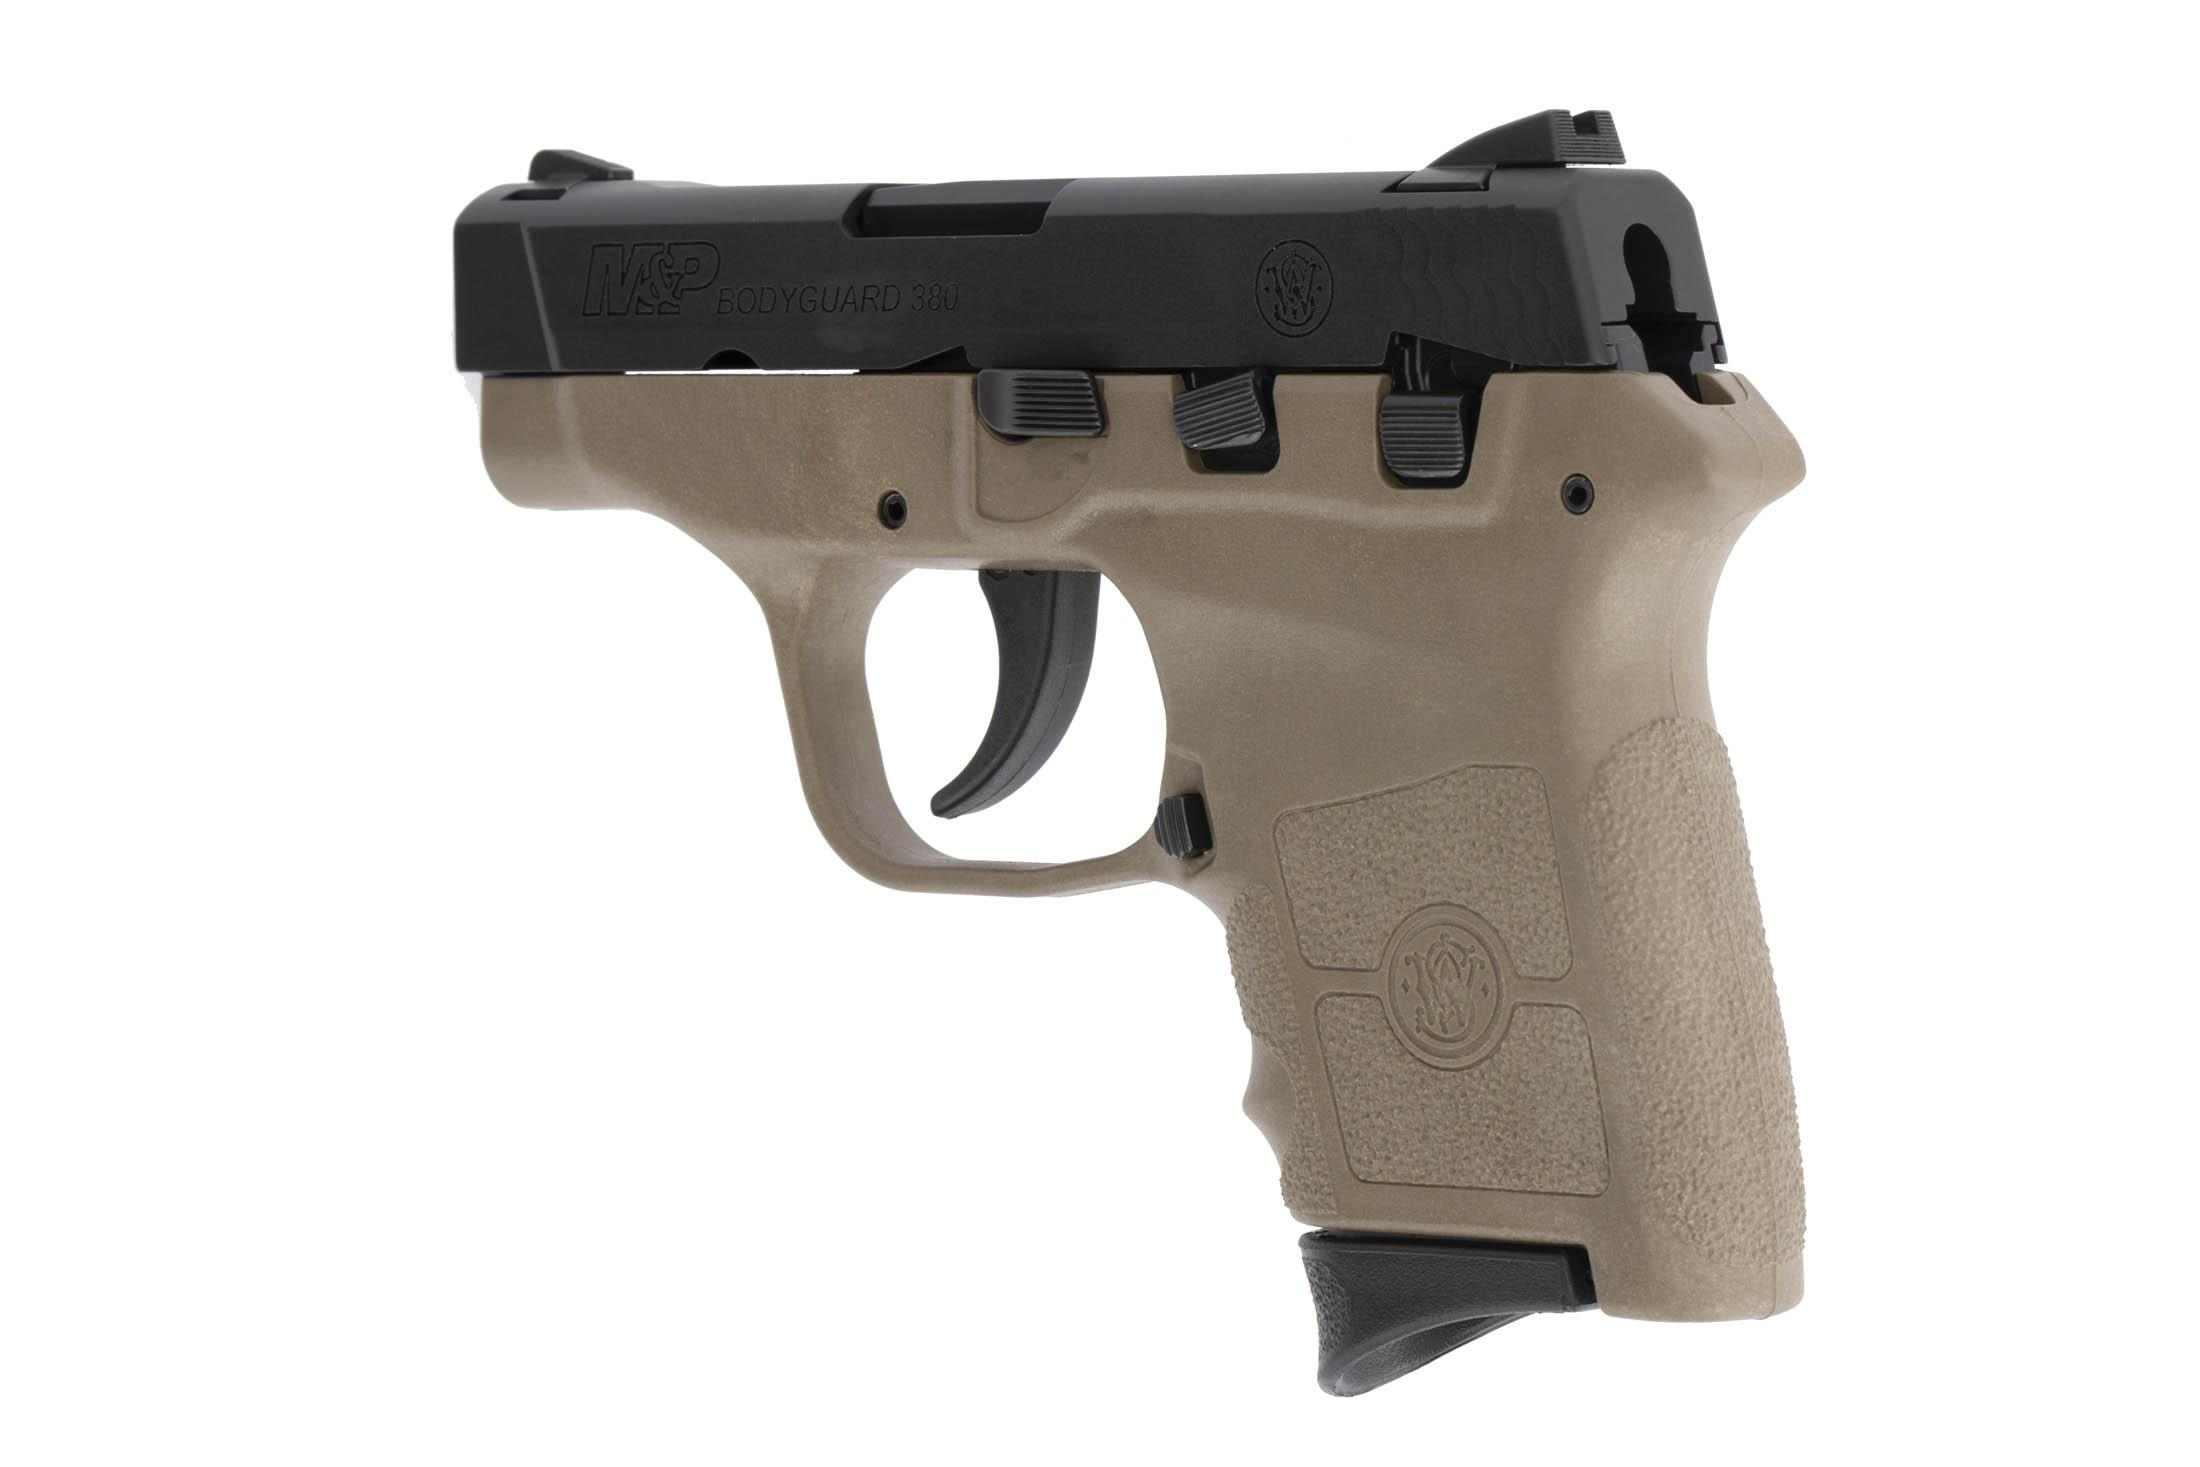 The Smith & Wesson M&P Bodyguard is a .380 ACP Sub Compact 6 round handgun with a polymer frame